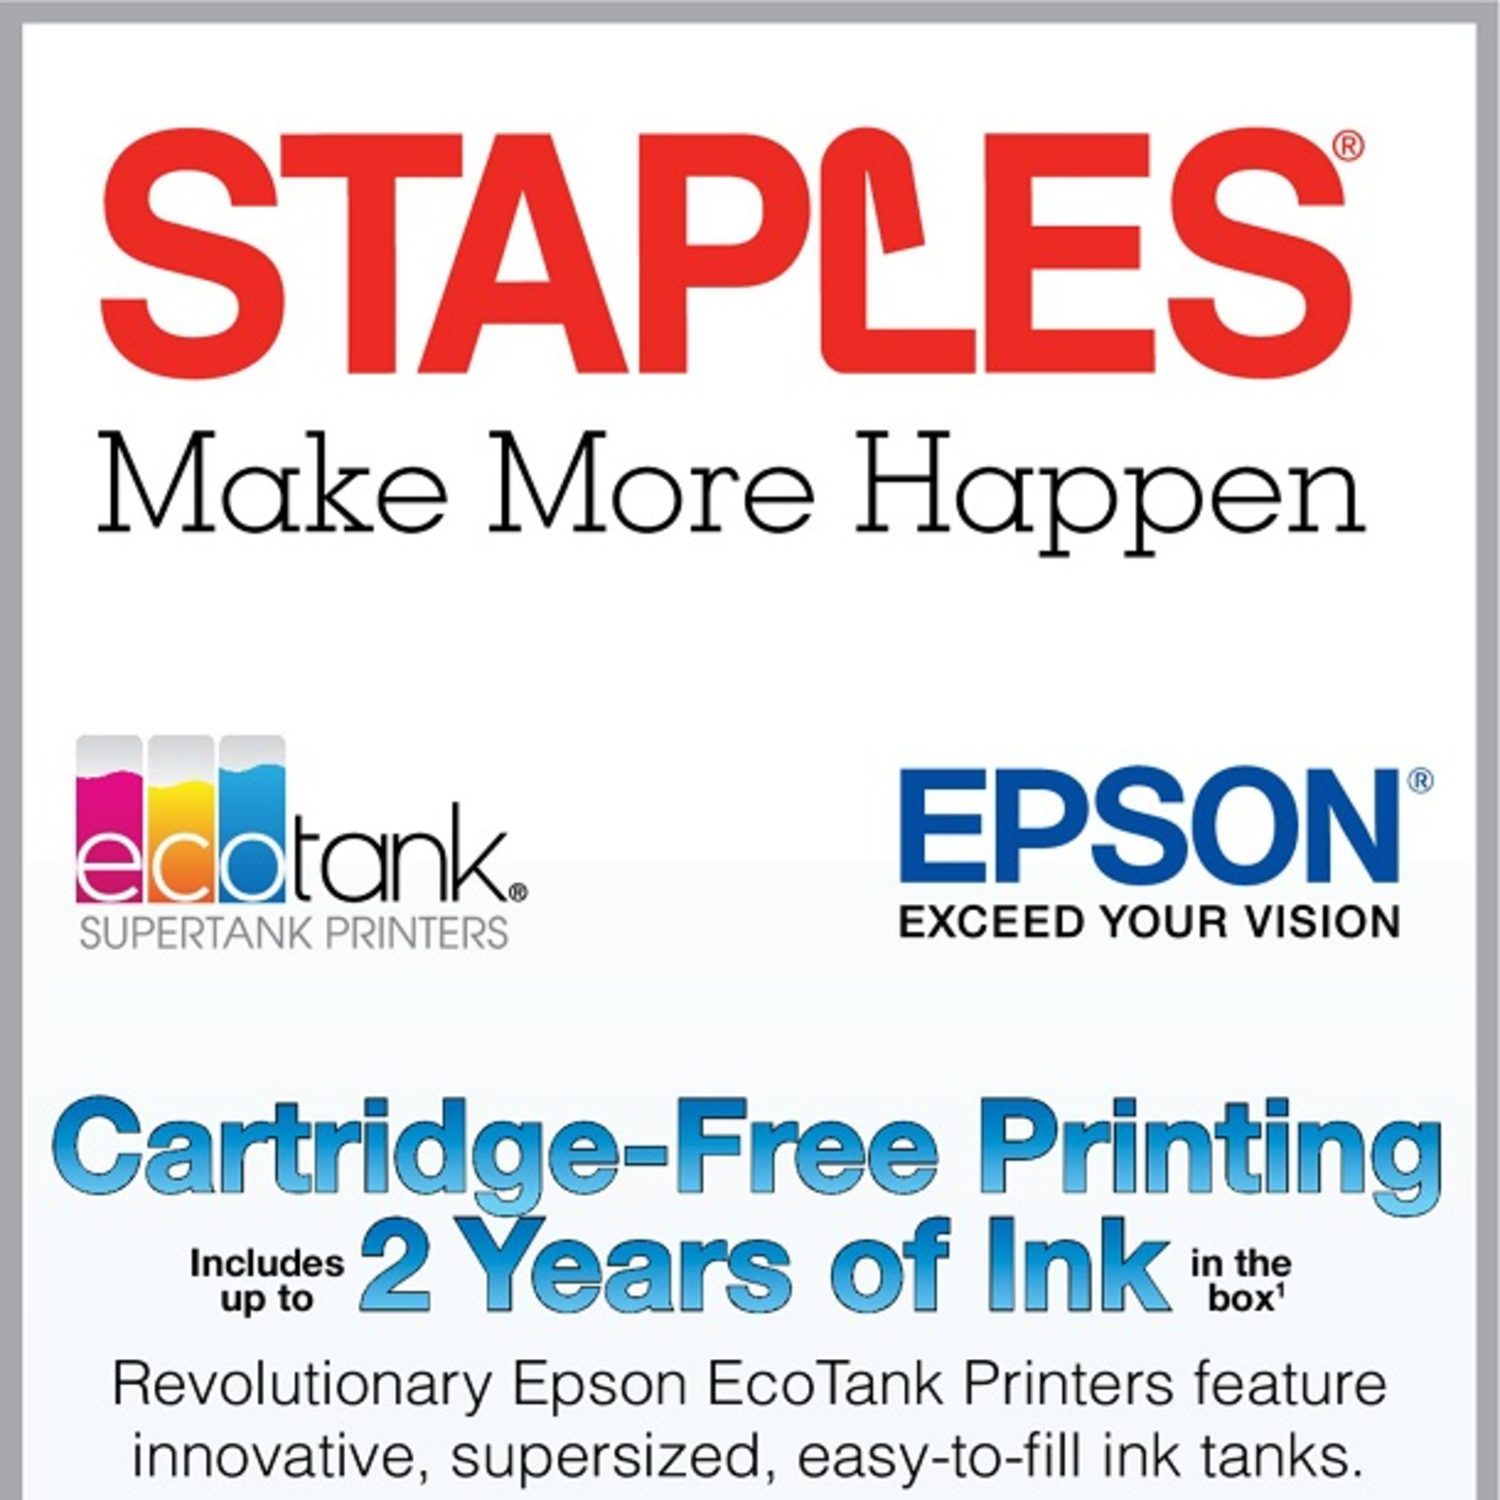 pull tab flyers at staples ecza productoseb co